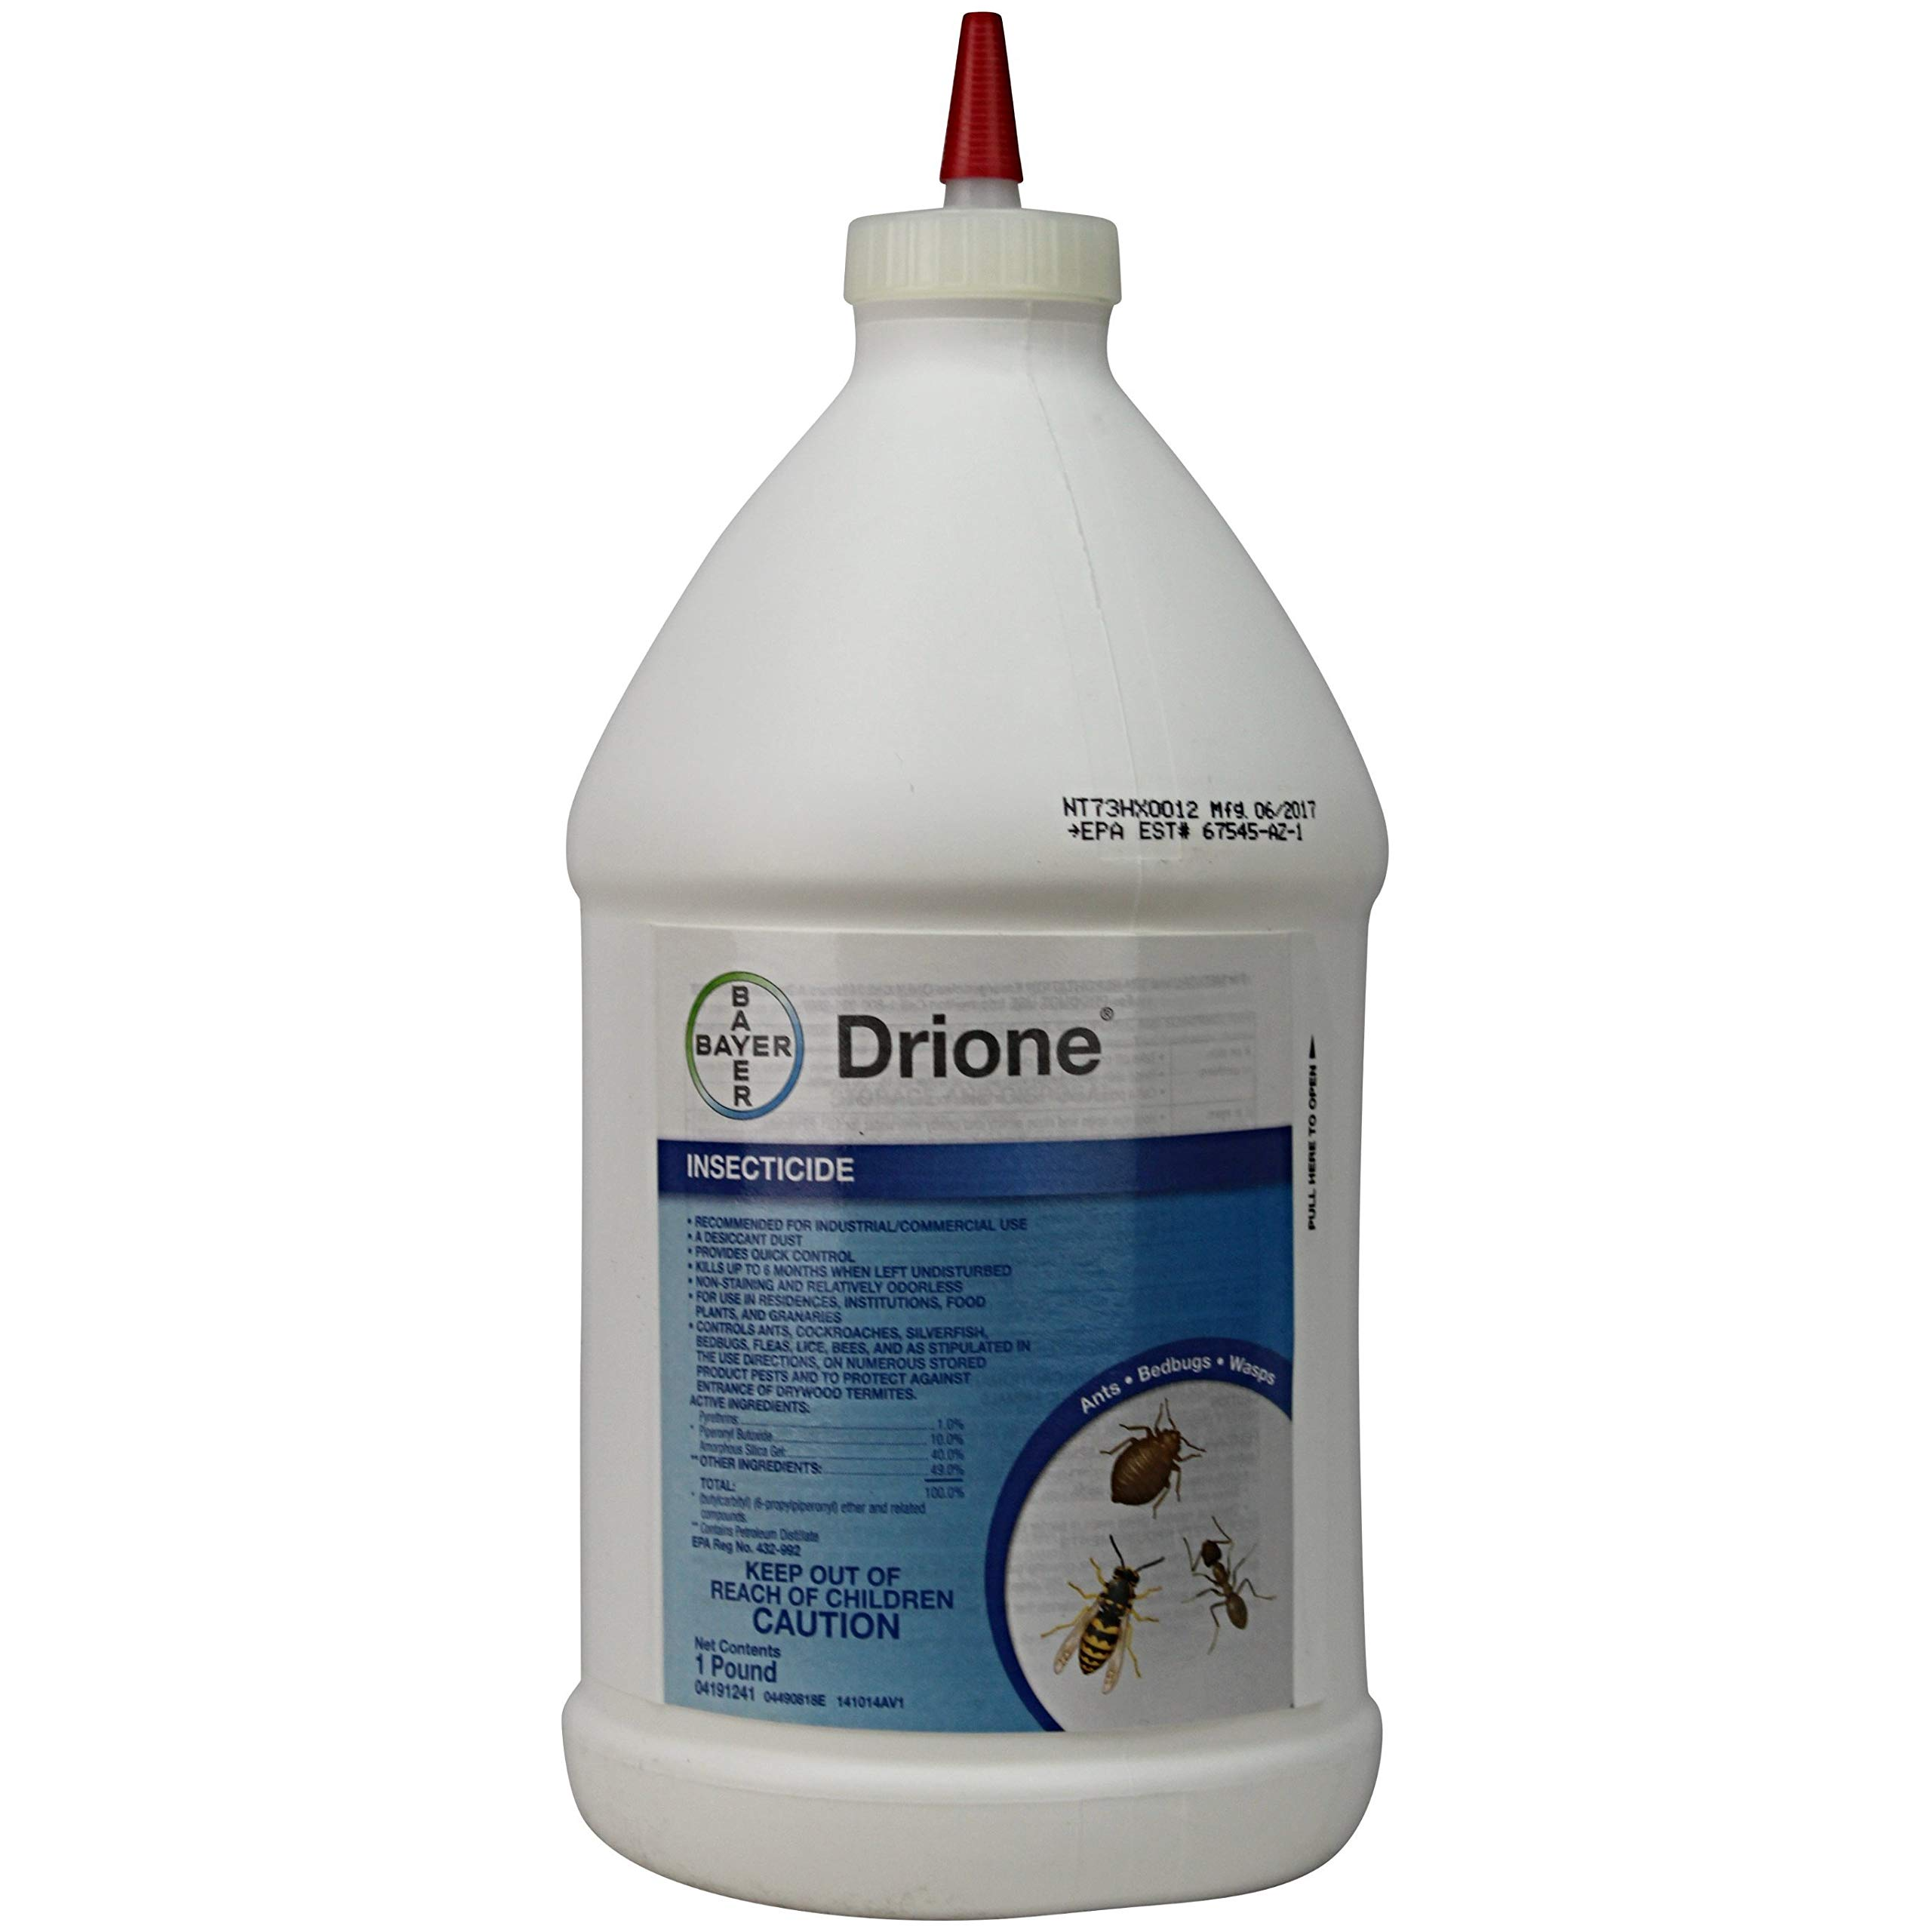 Bayer 10070 Drione Dust General Insect Control